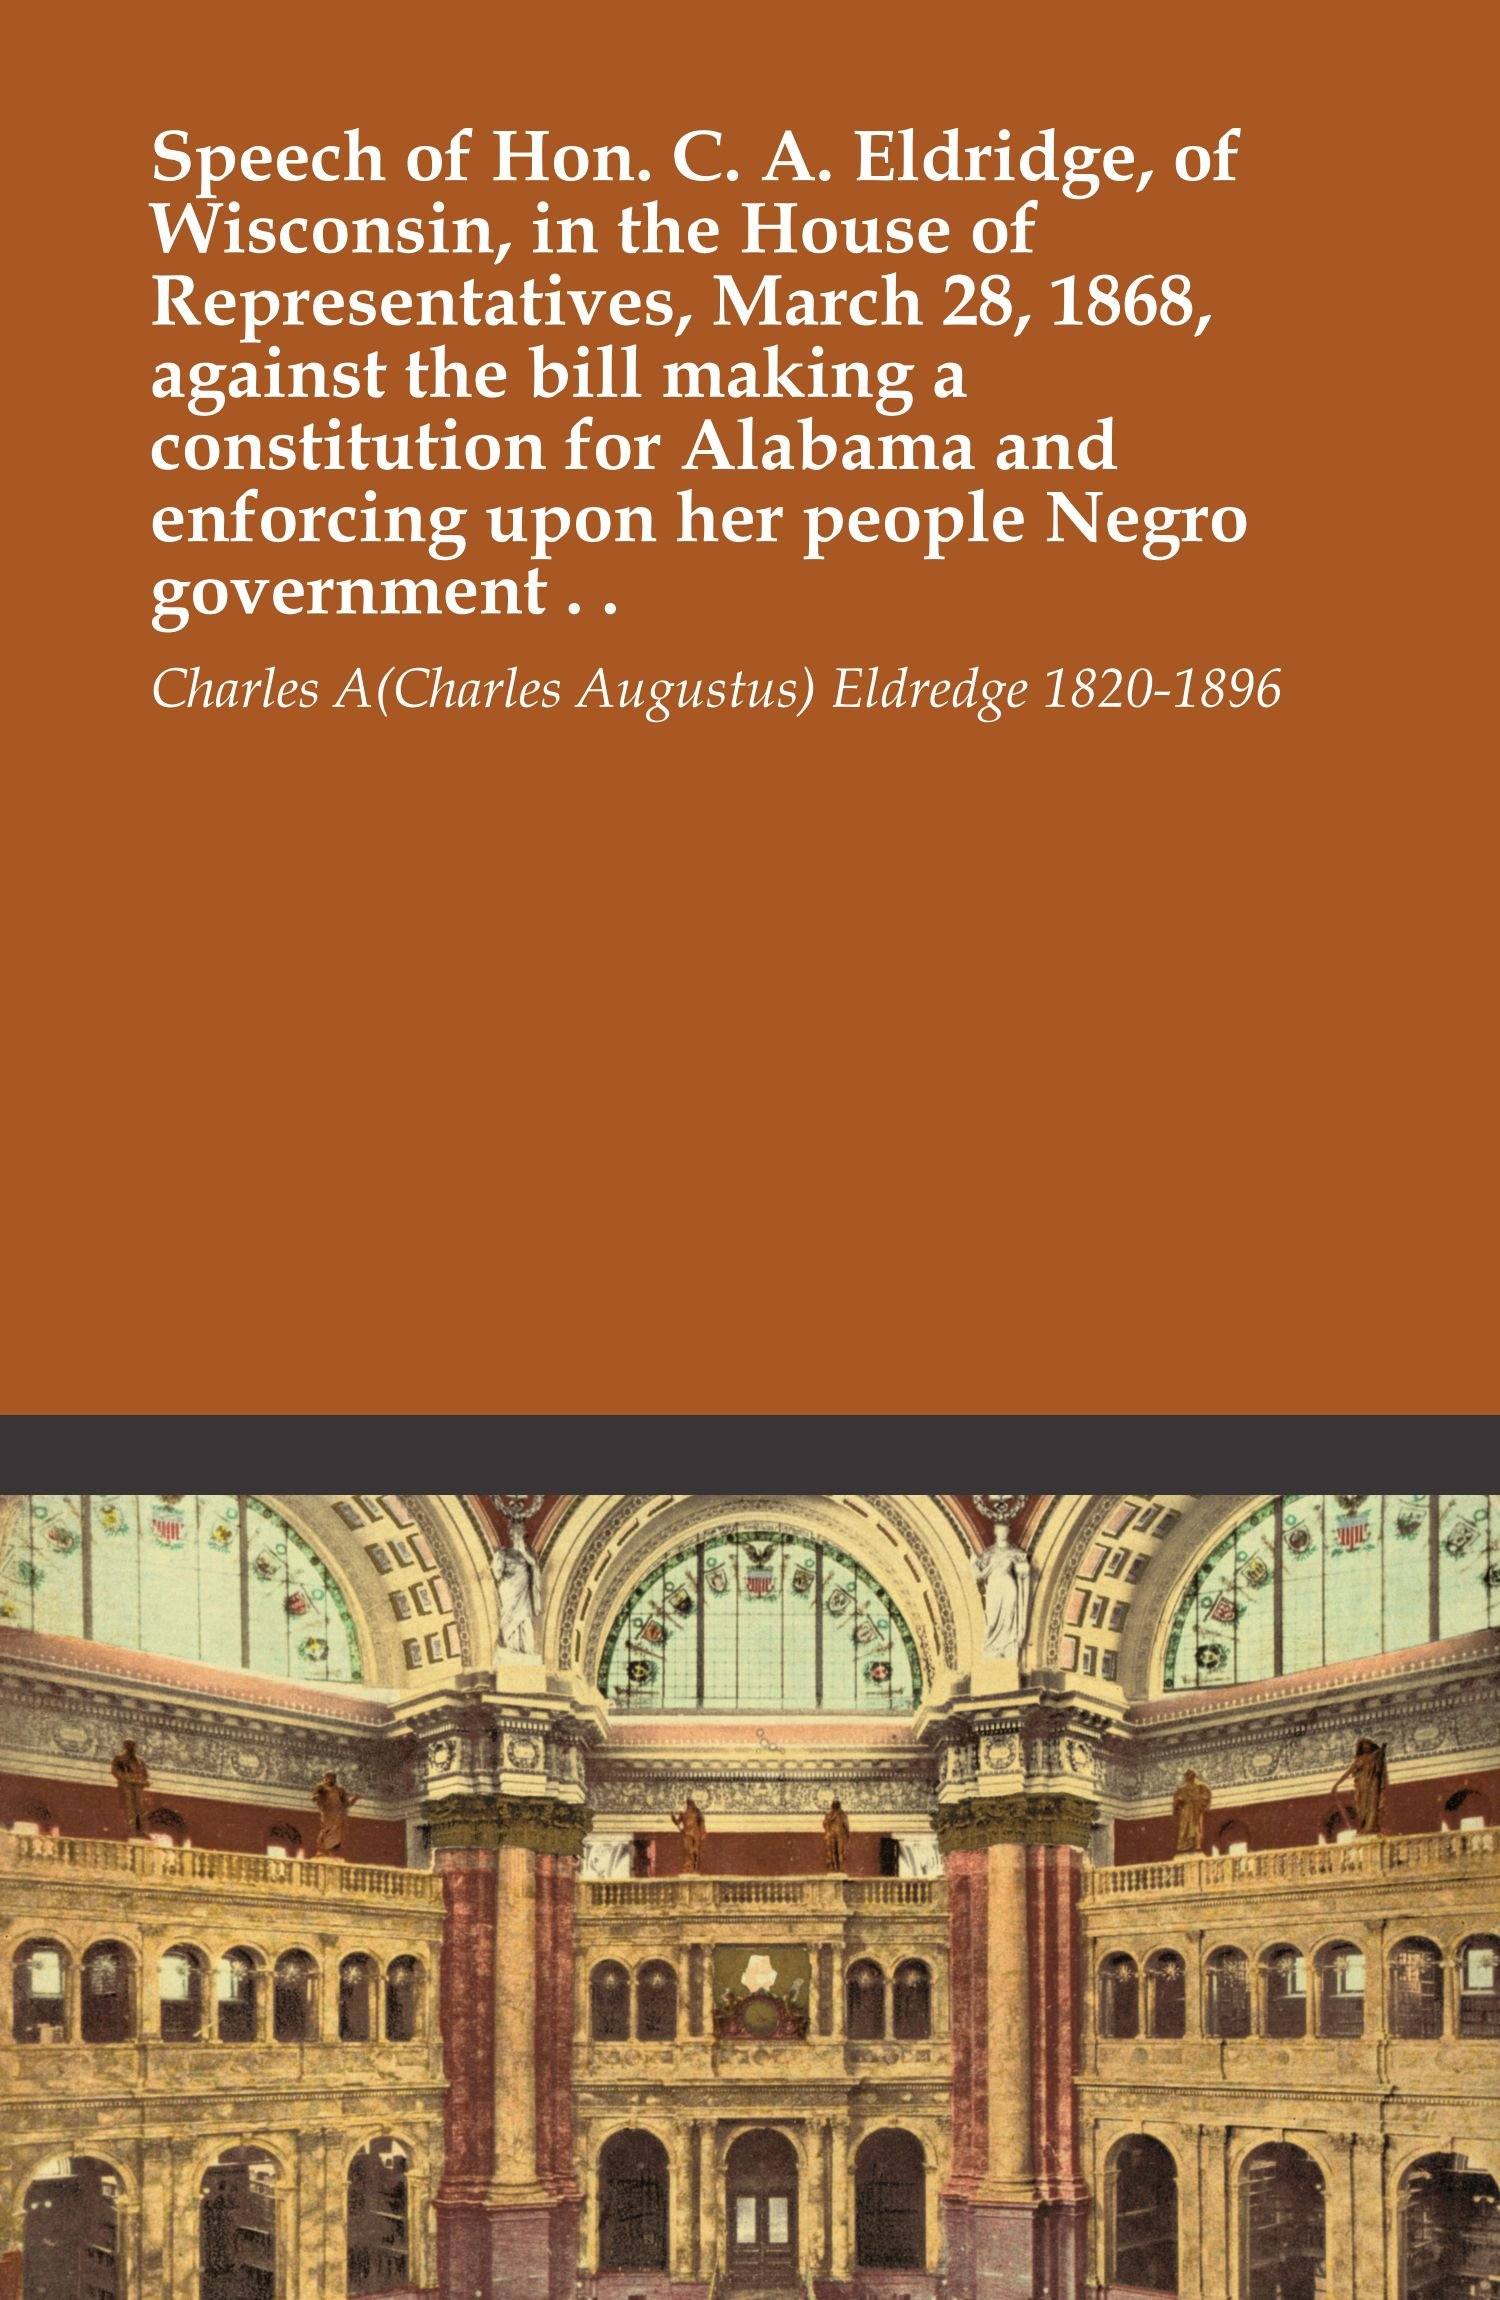 Download Speech of Hon. C. A. Eldridge, of Wisconsin, in the House of Representatives, March 28, 1868, against the bill making a constitution for Alabama and enforcing upon her people Negro government . . PDF